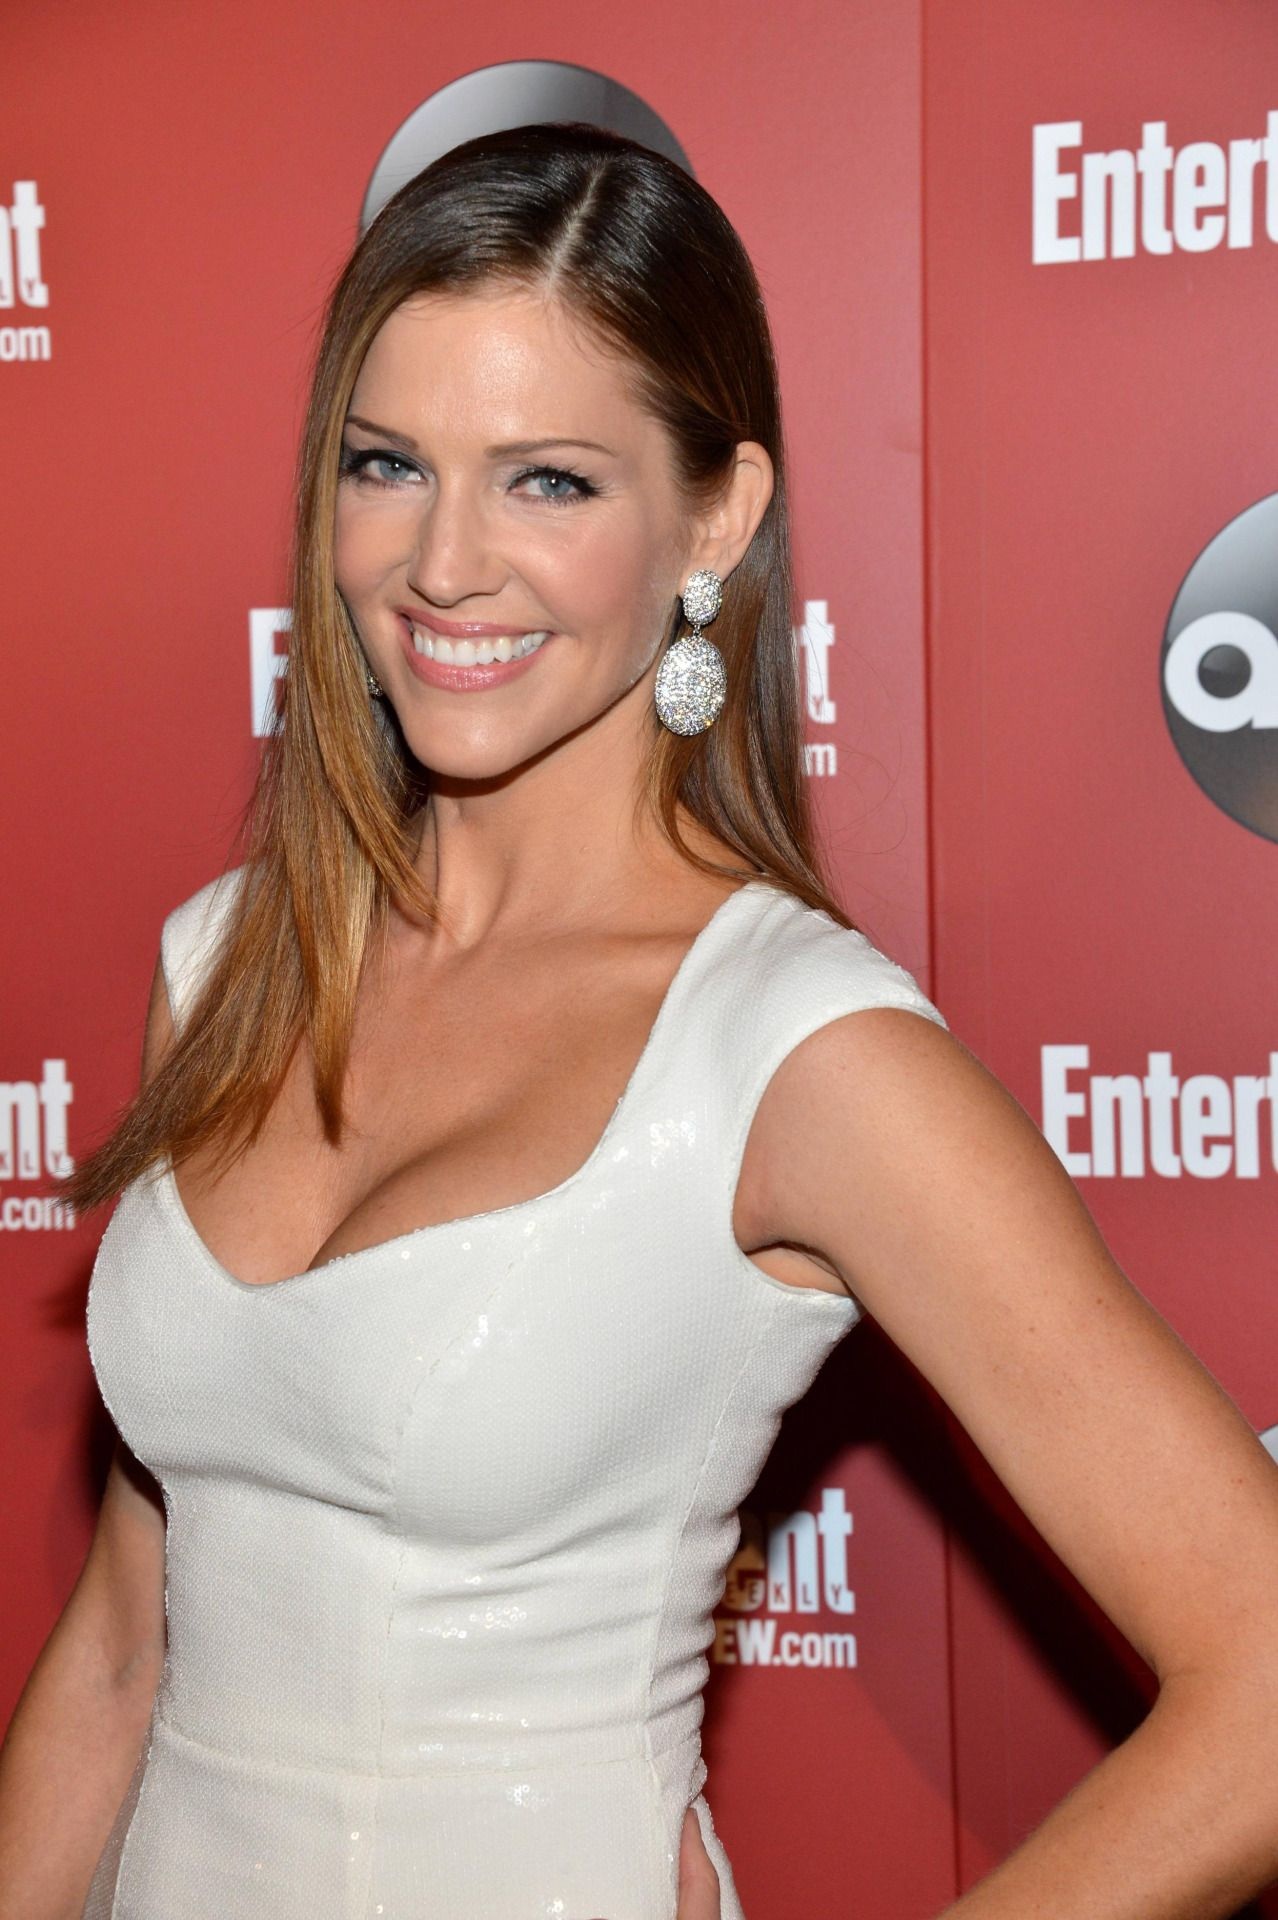 Cleavage Tricia Helfer nude photos 2019